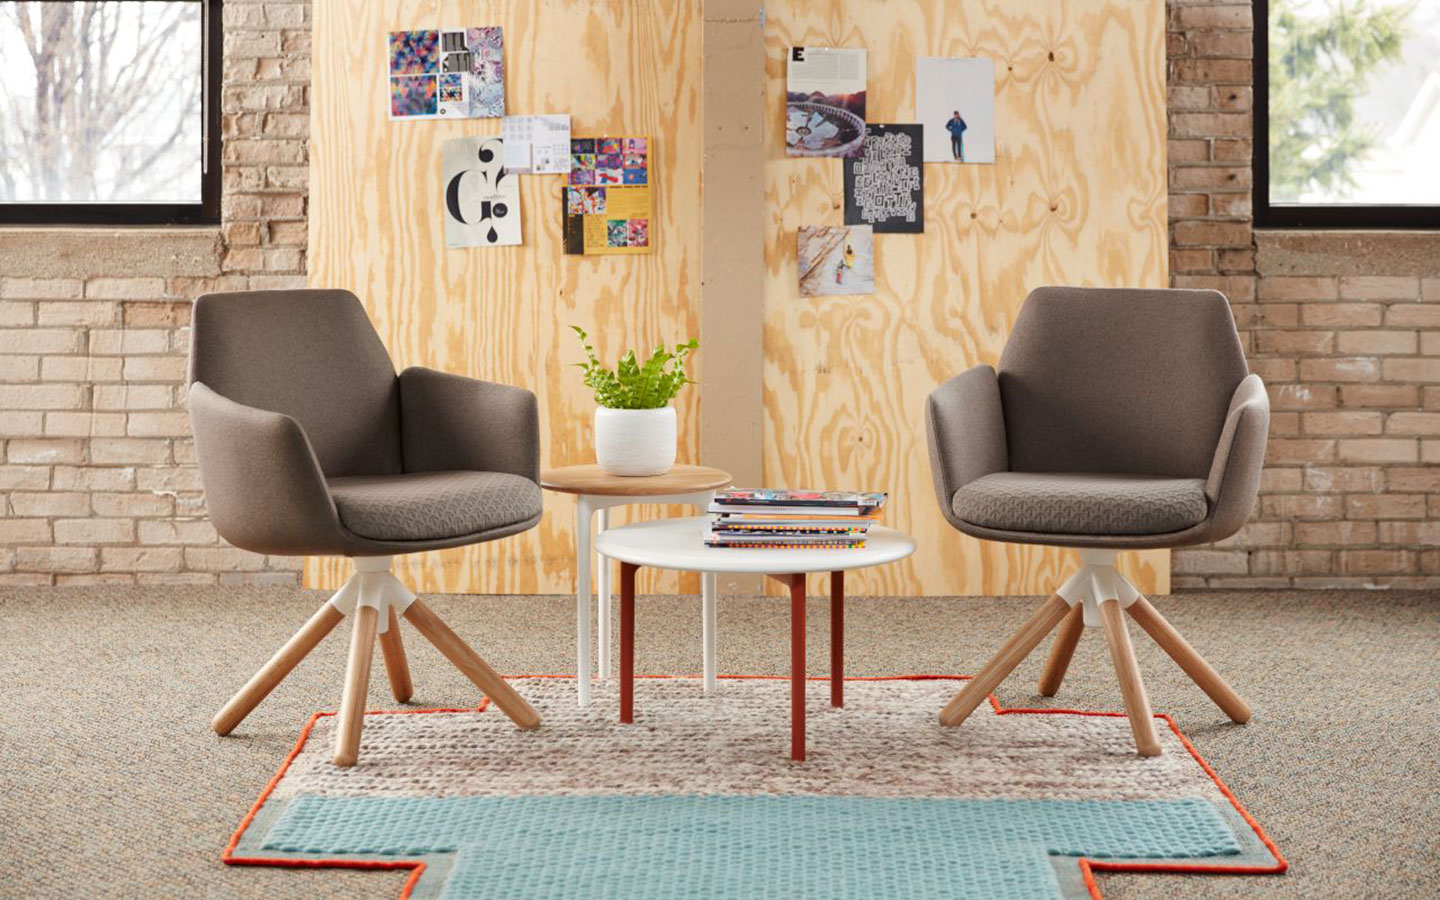 7 Top Interior Design Trends for 2016 (NeoCon)